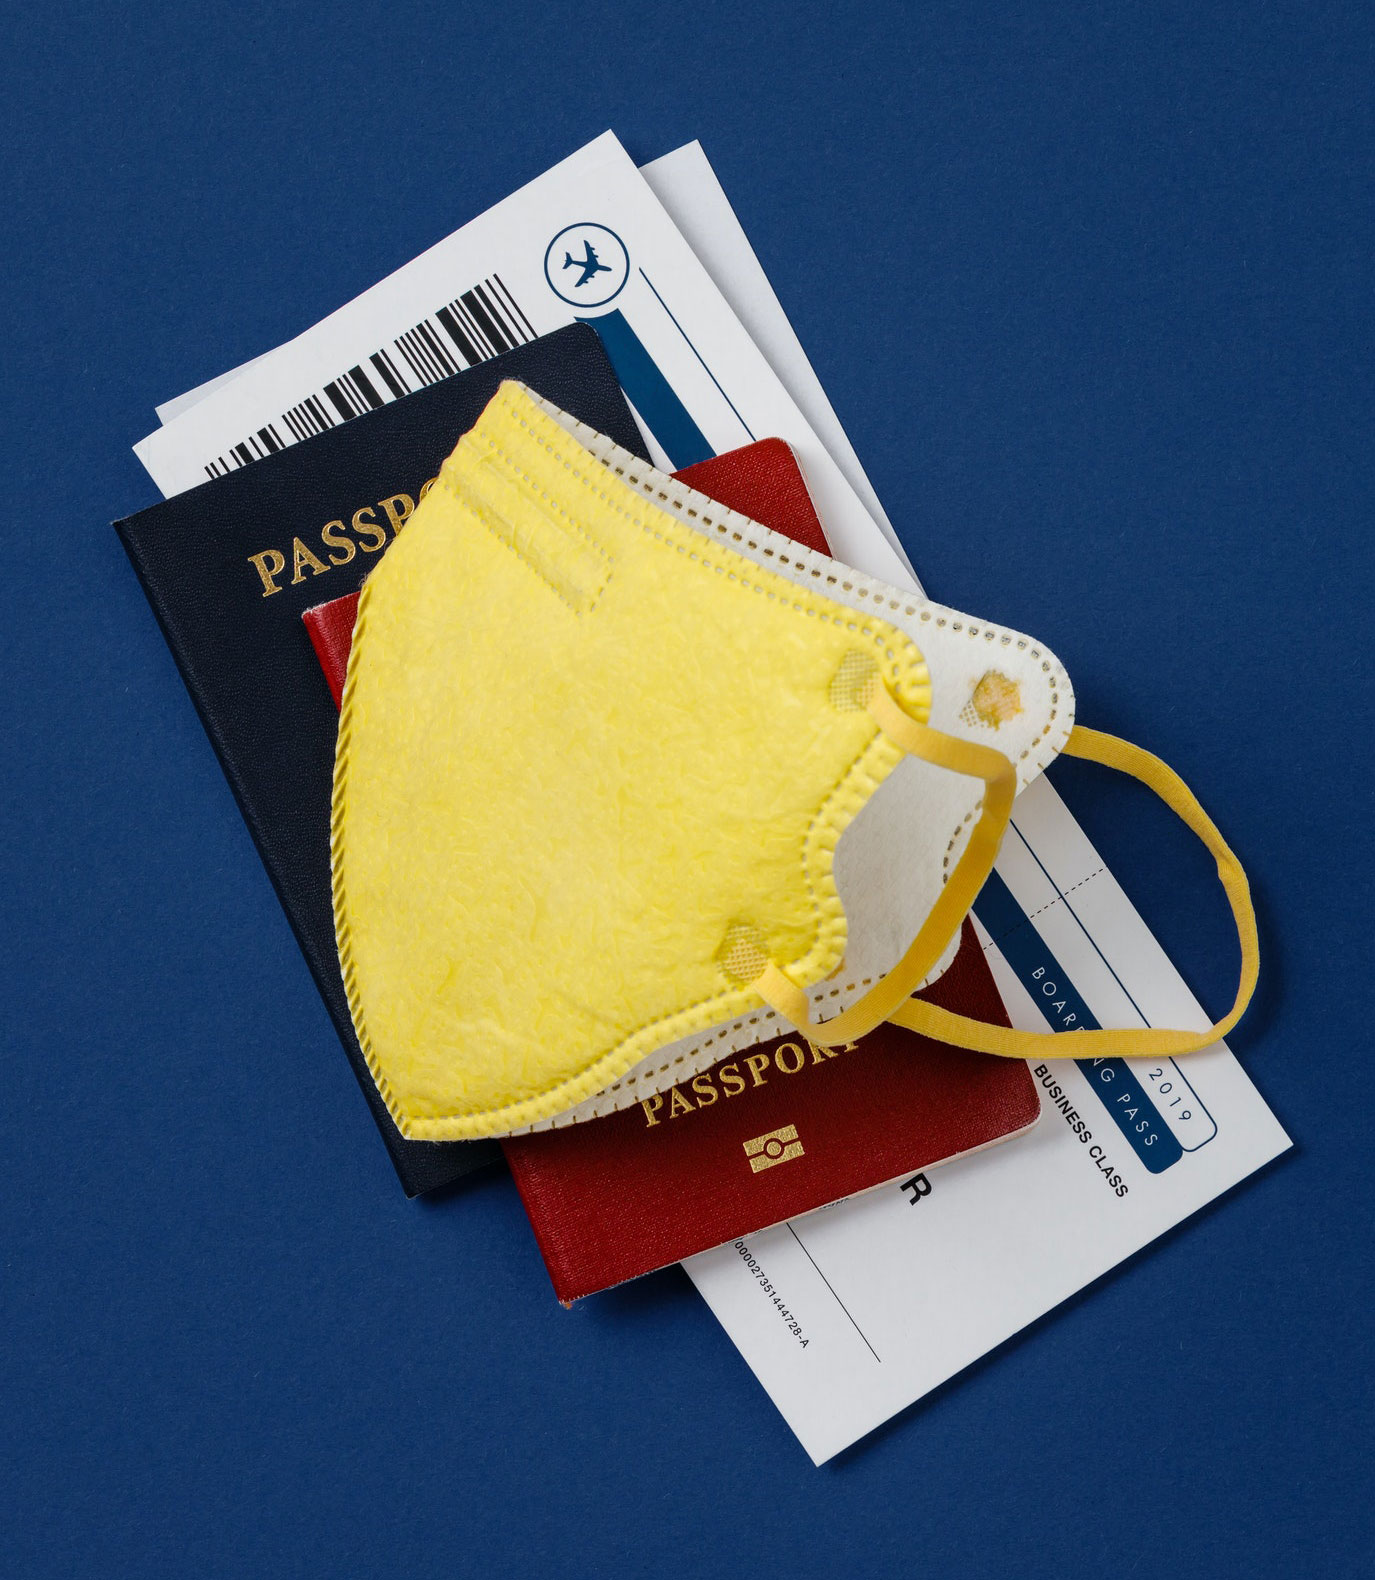 coronavirus-and-travel-concept-passports-airplane-tickets-and-medical-mask